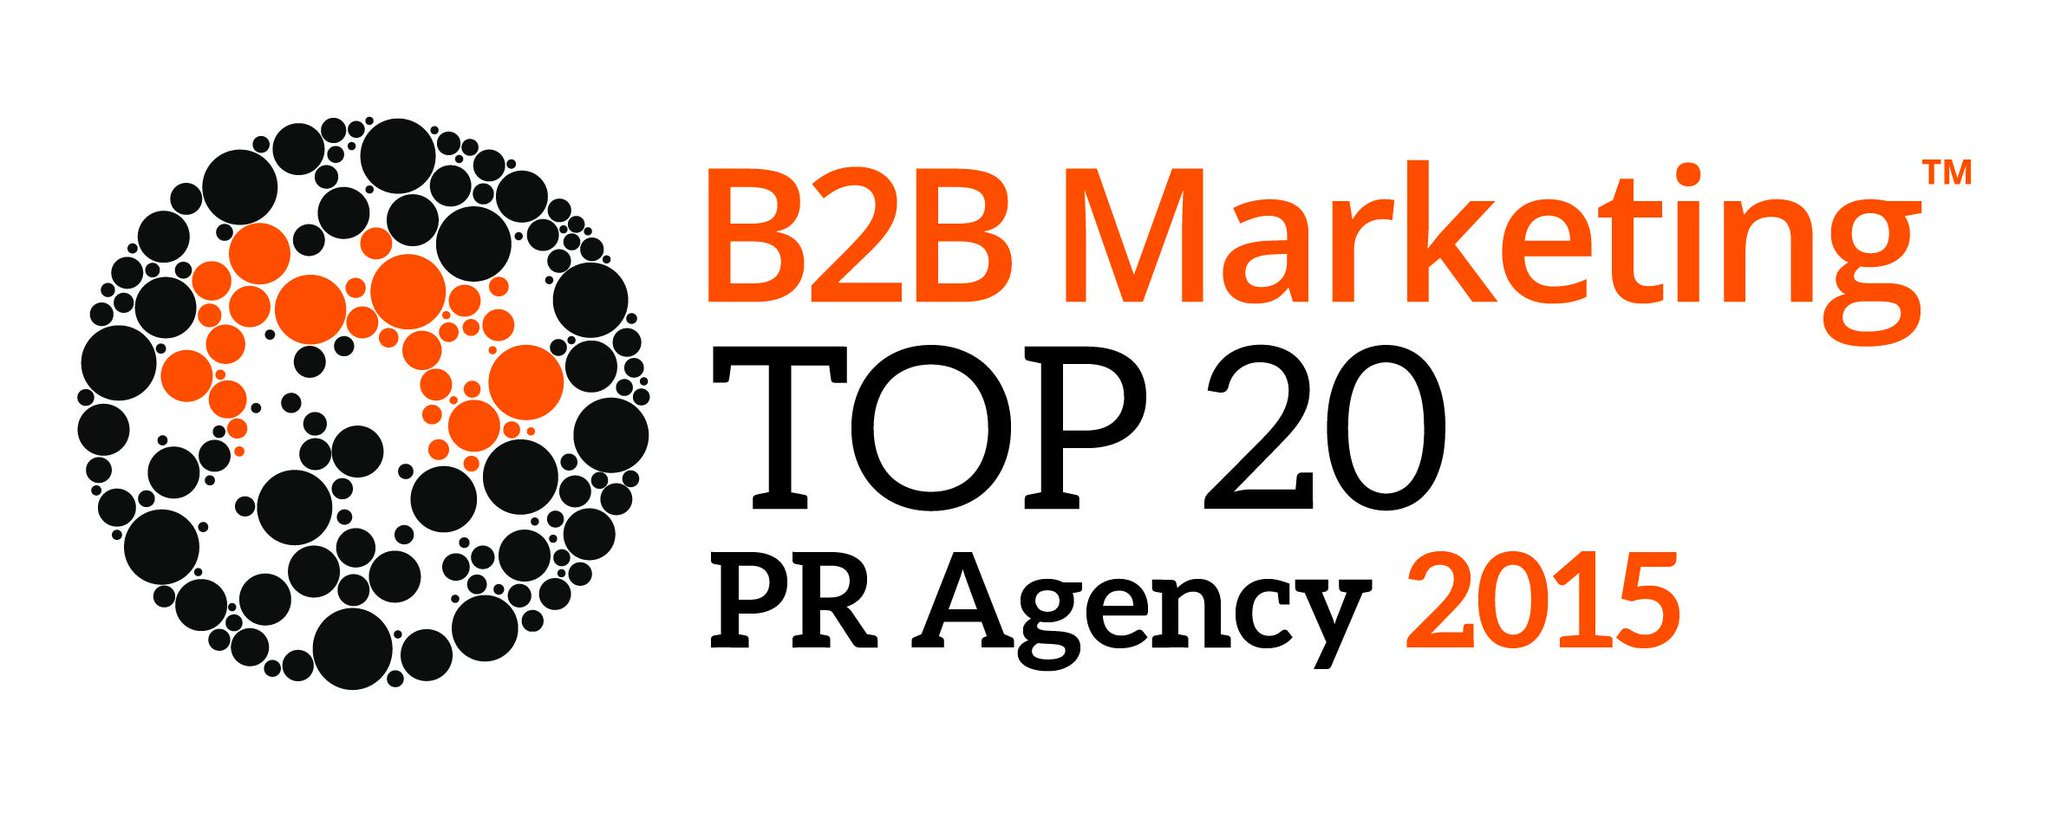 We are proud to announce @CubanEightPR is featured in our #TopB2BPRAgencies league table http://t.co/c4Rb8msRry http://t.co/oiWXSlftK8